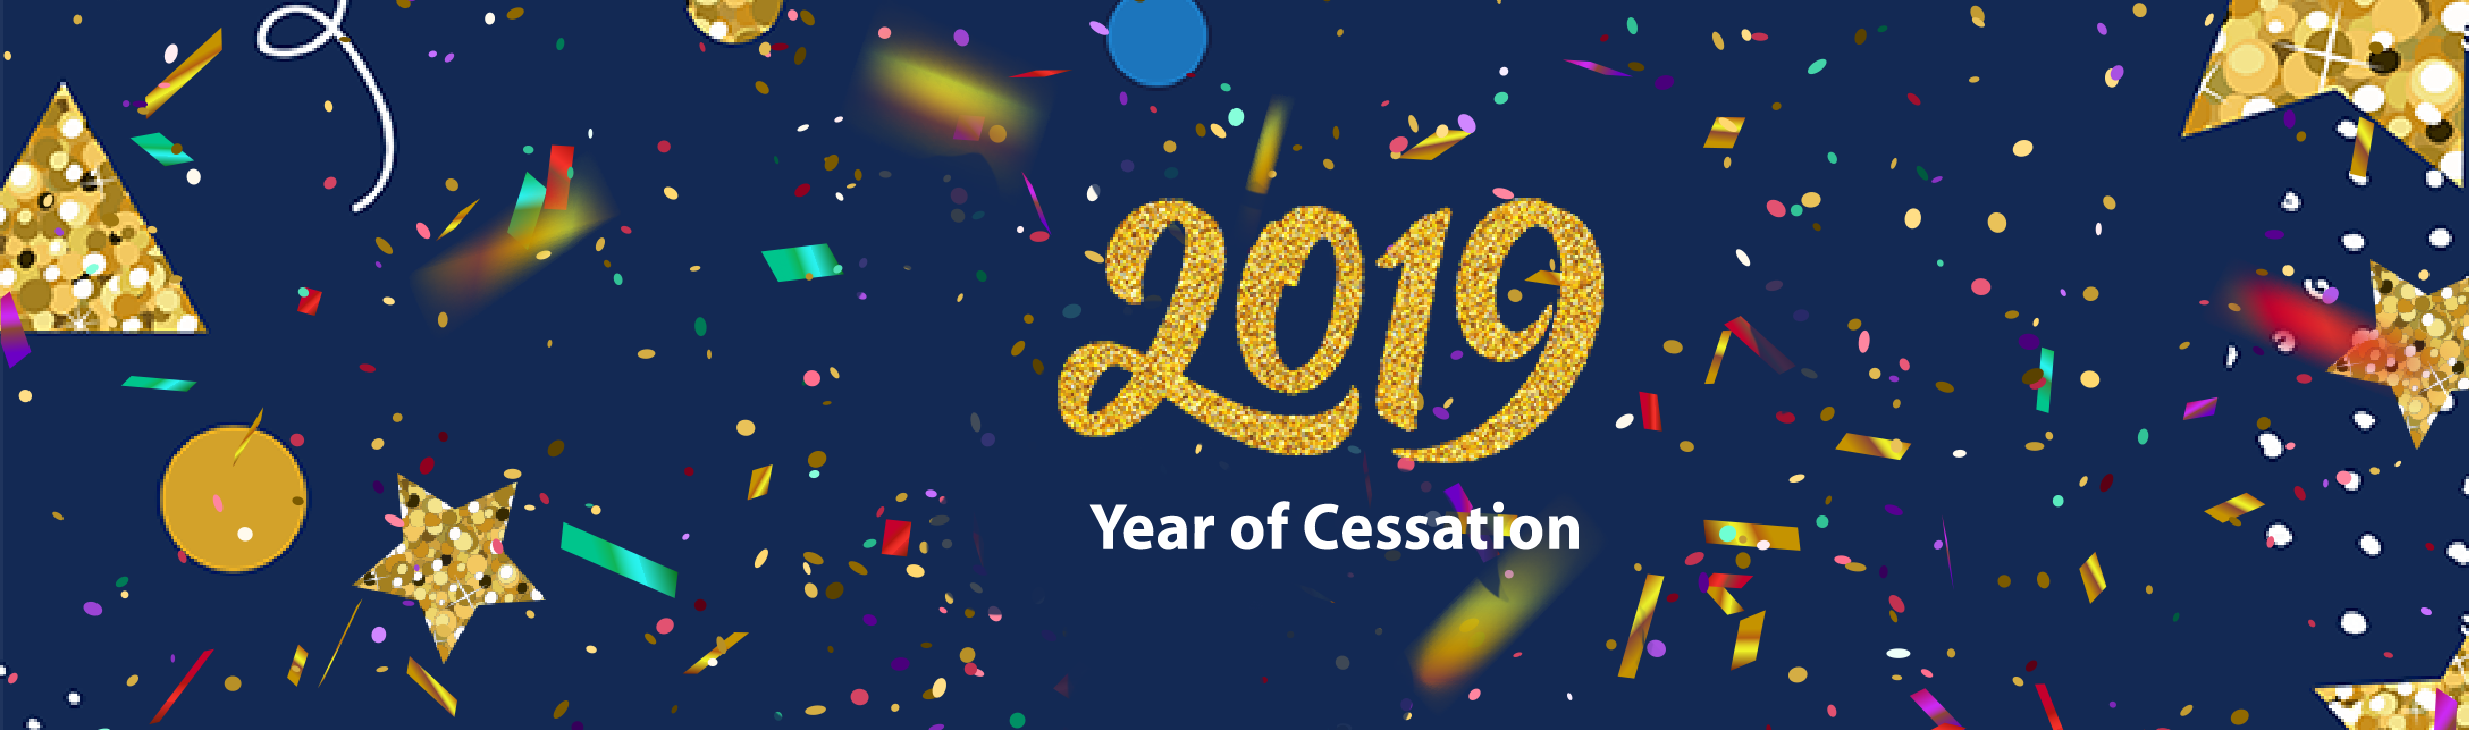 2019 Year of Cessation